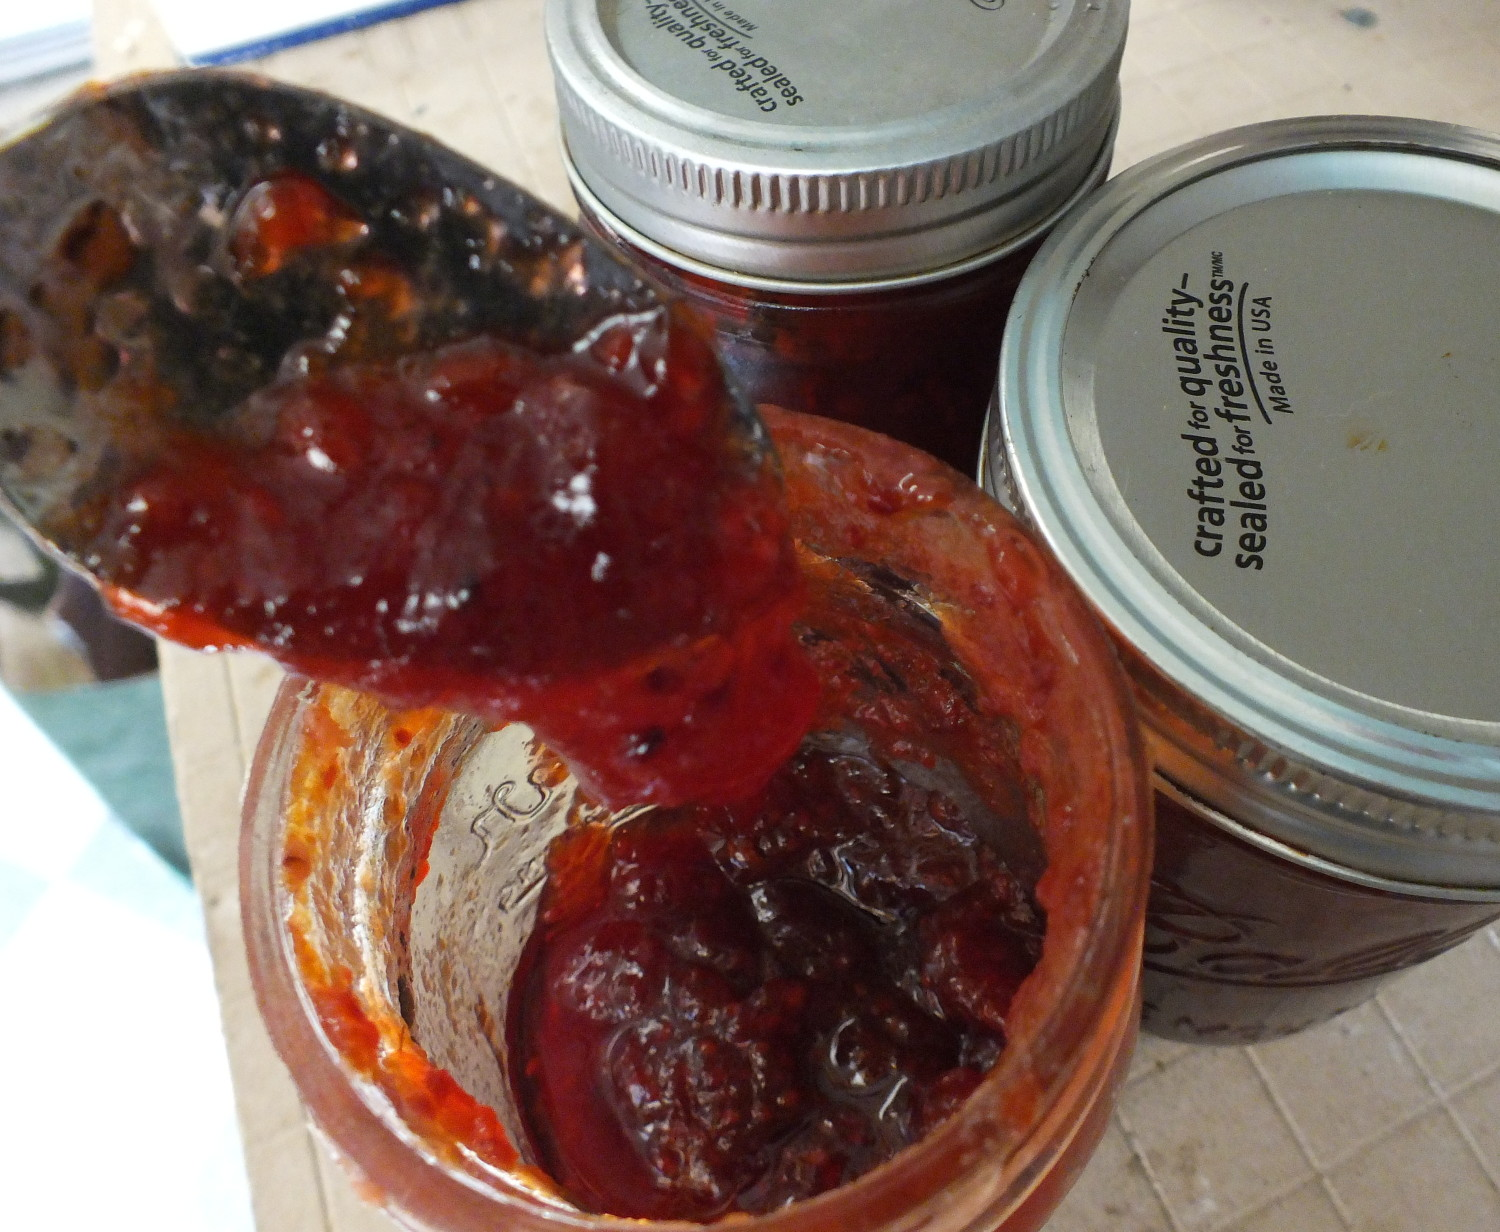 Yum! Fresh homemade salmonberry jam is delicious! (Photo by Matt Miller/KTOO)